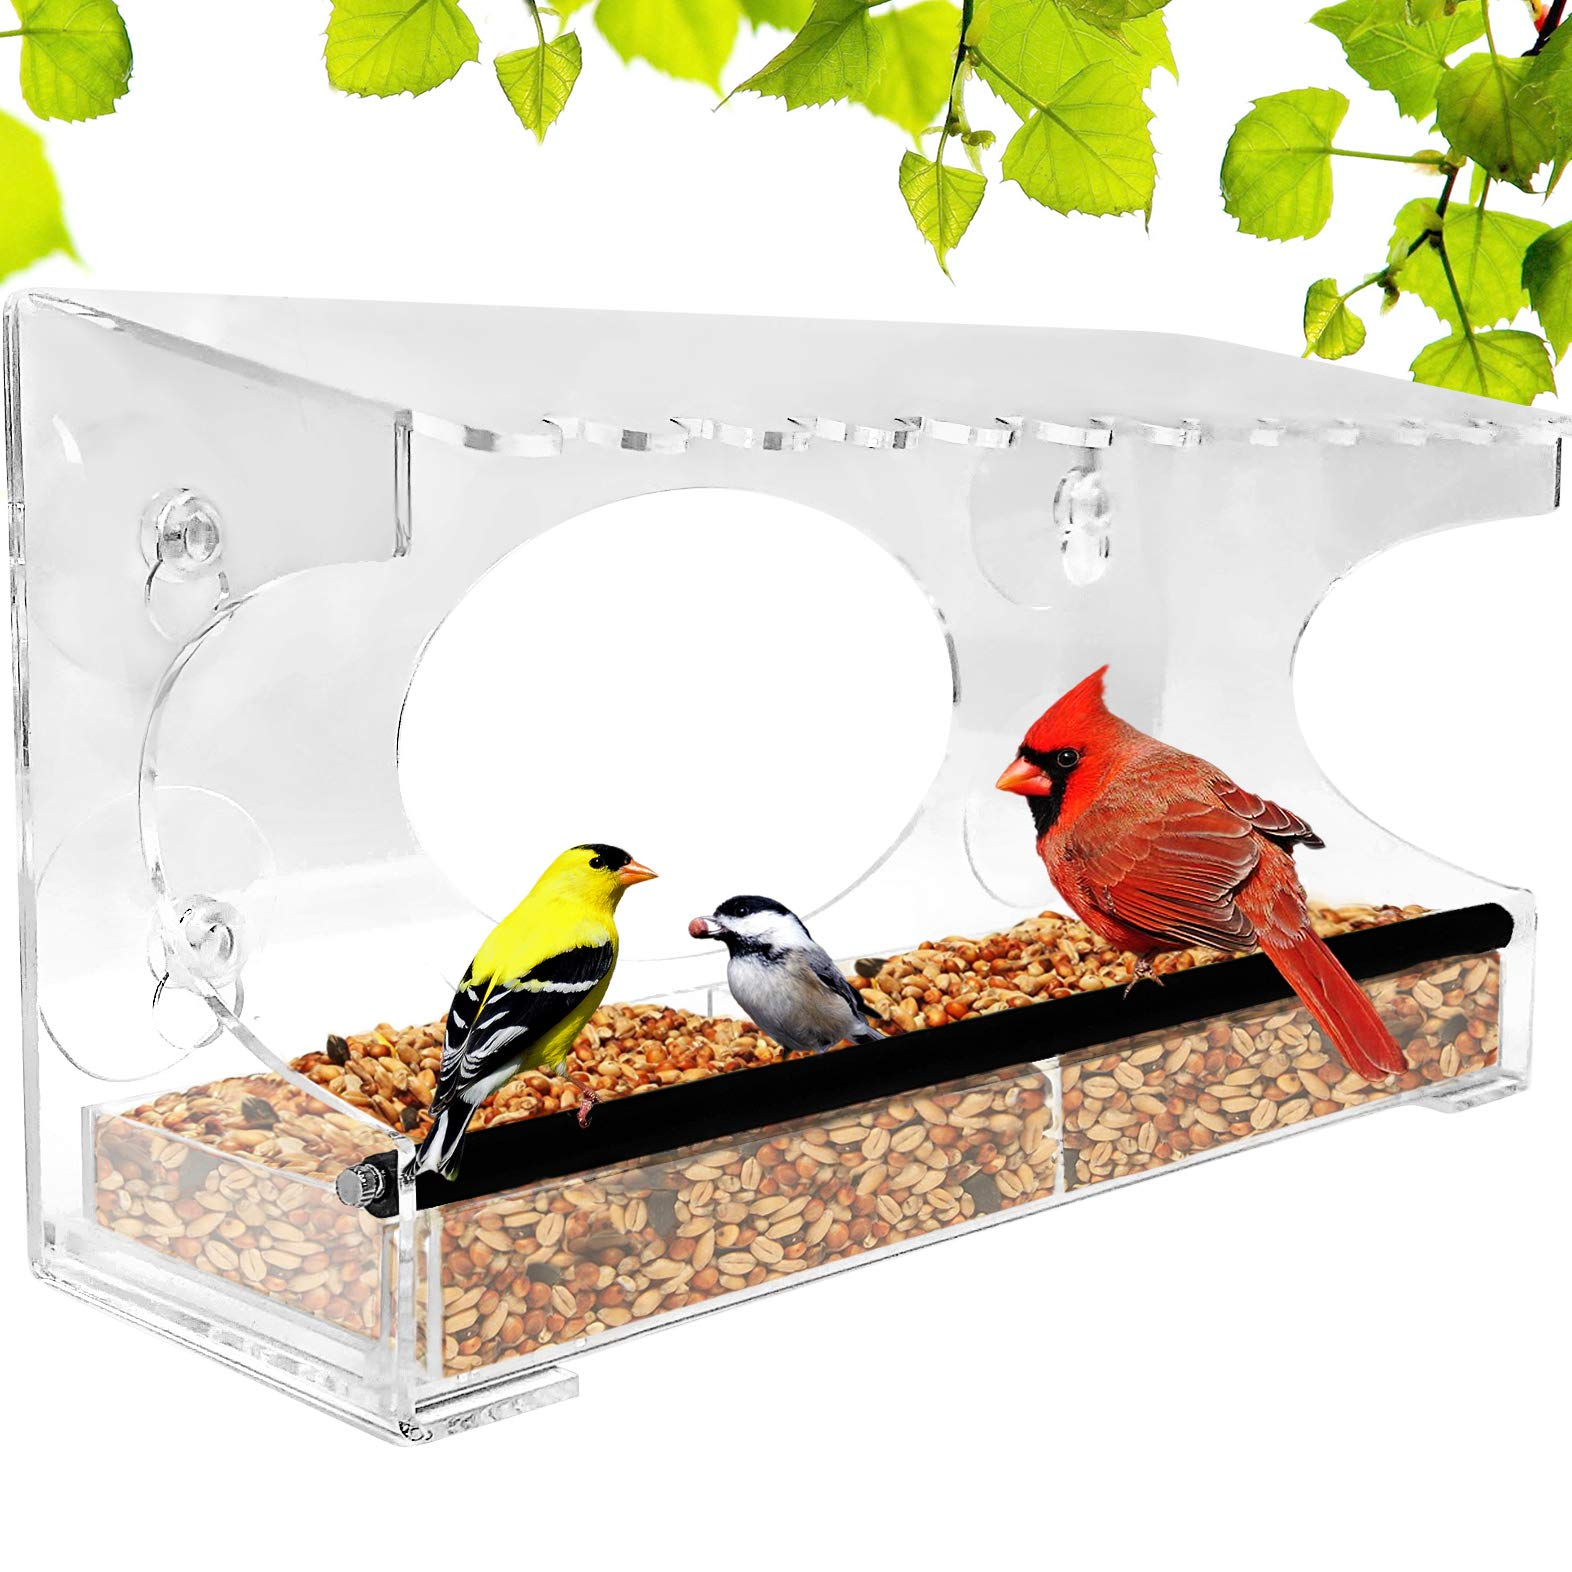 Window Bird Feeder - 2019 Model - Extended Roof - Steel Perch - Sliding Feed Tray Drains Water - See Wild Birds Up Close! - Large